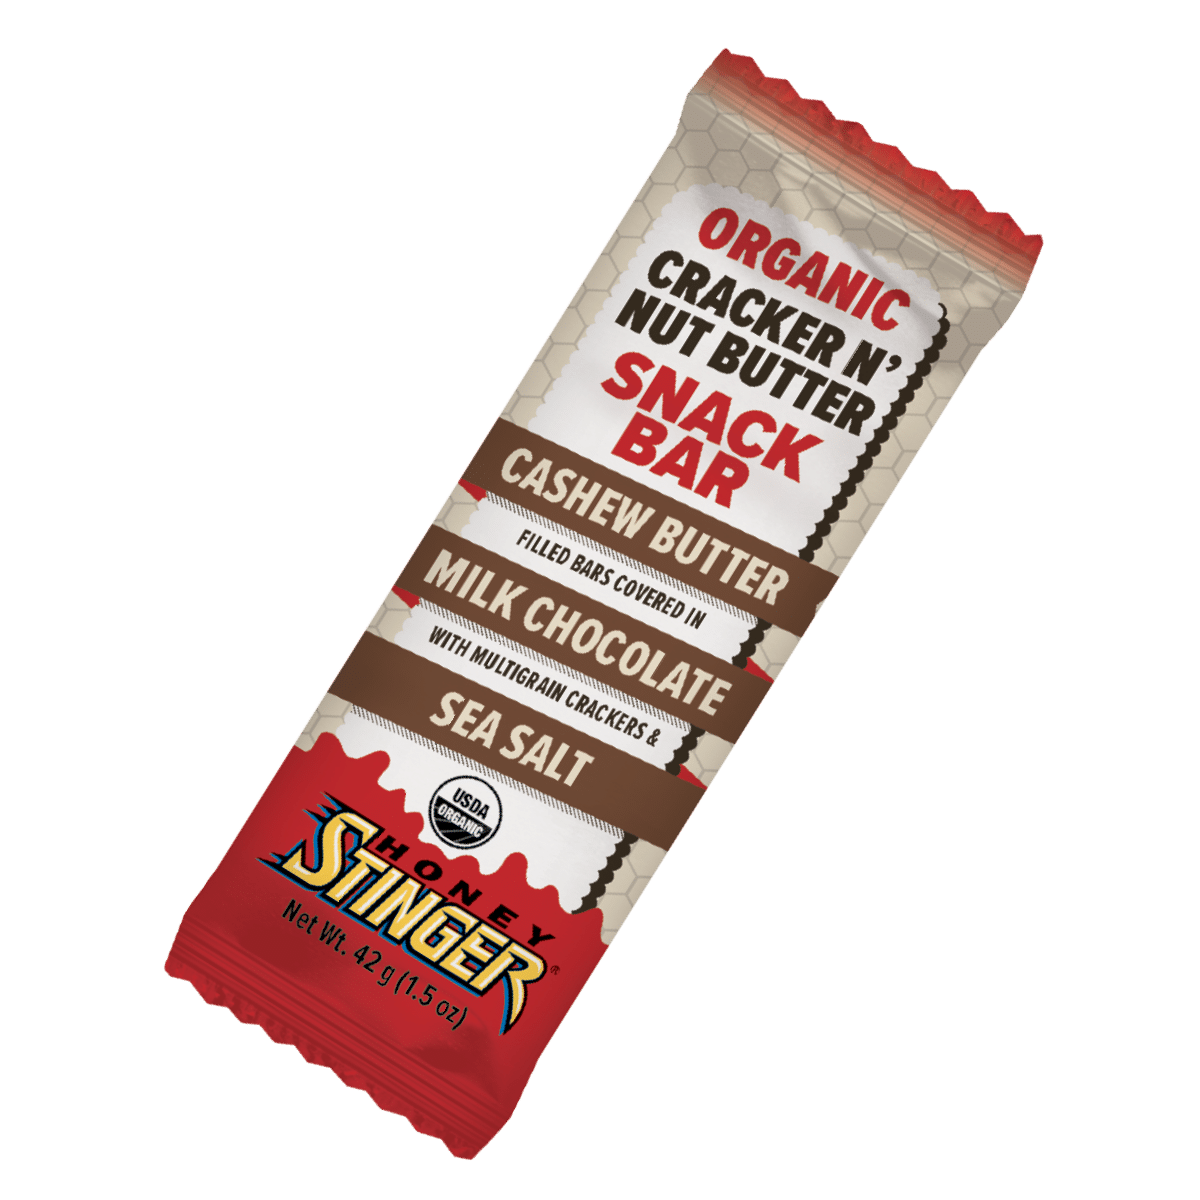 Honey Stinger Releases Cashew Butter & Milk Chocolate Cracker N' Nut Butter Snack Bar